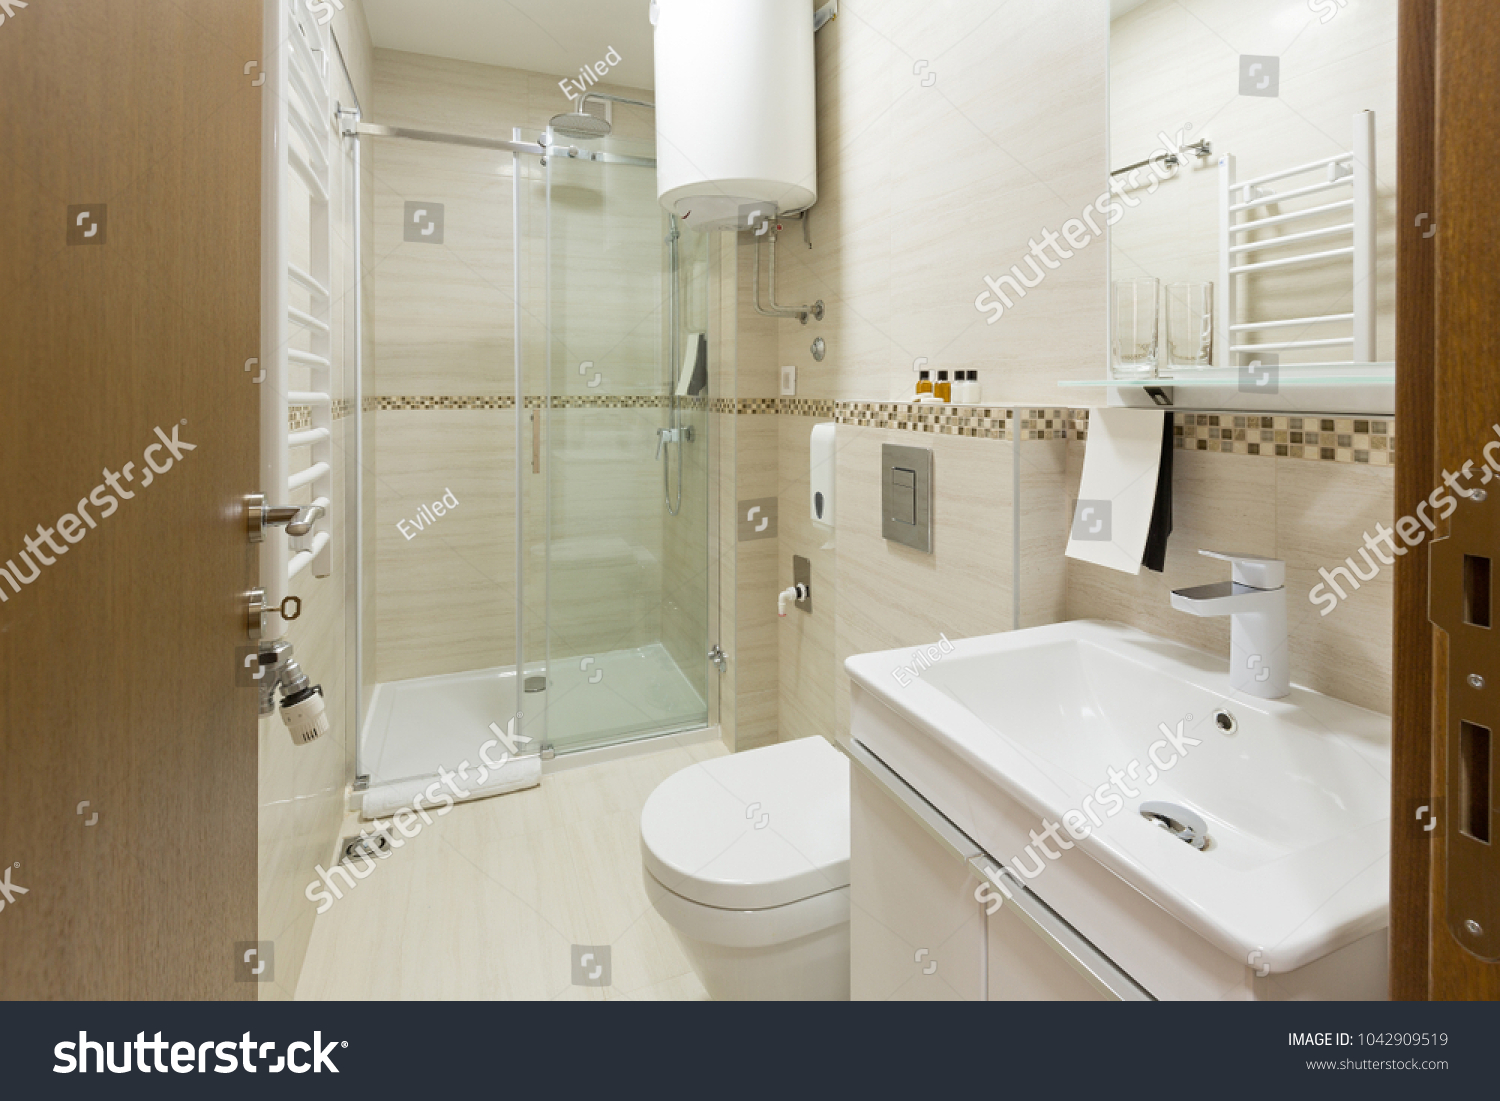 Interior of a hotel bathroom with shower cabin | EZ Canvas